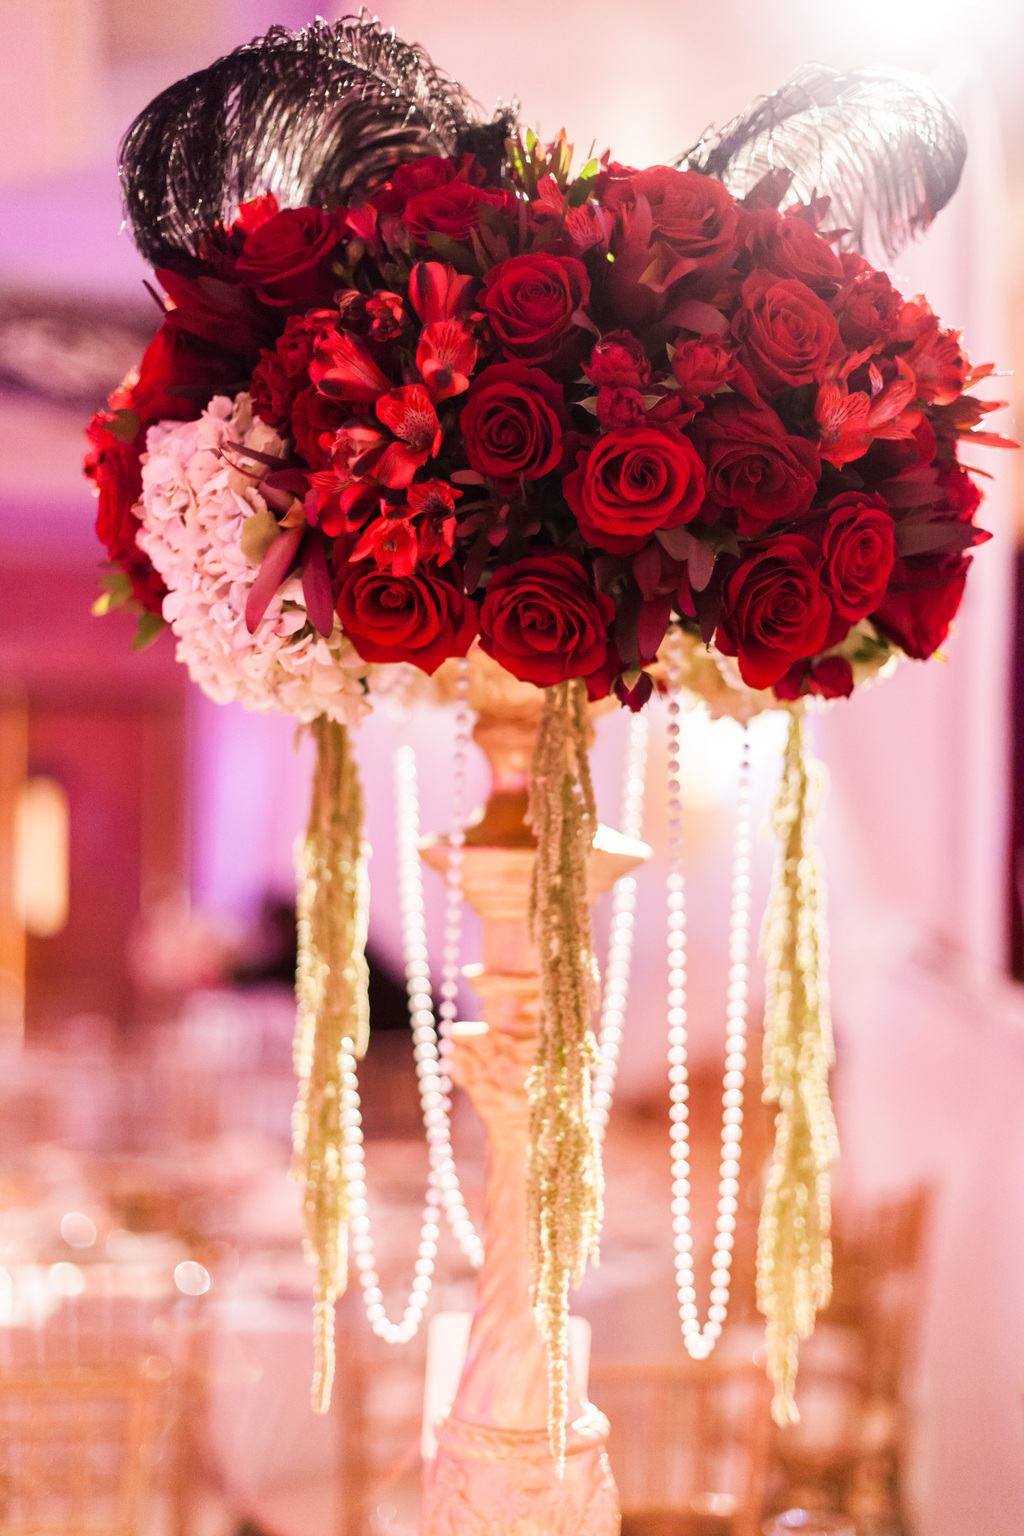 Epic-wedding-in-los-angeles-california-weddings-red-rose-with-feathers-pearls-centerpiece.full